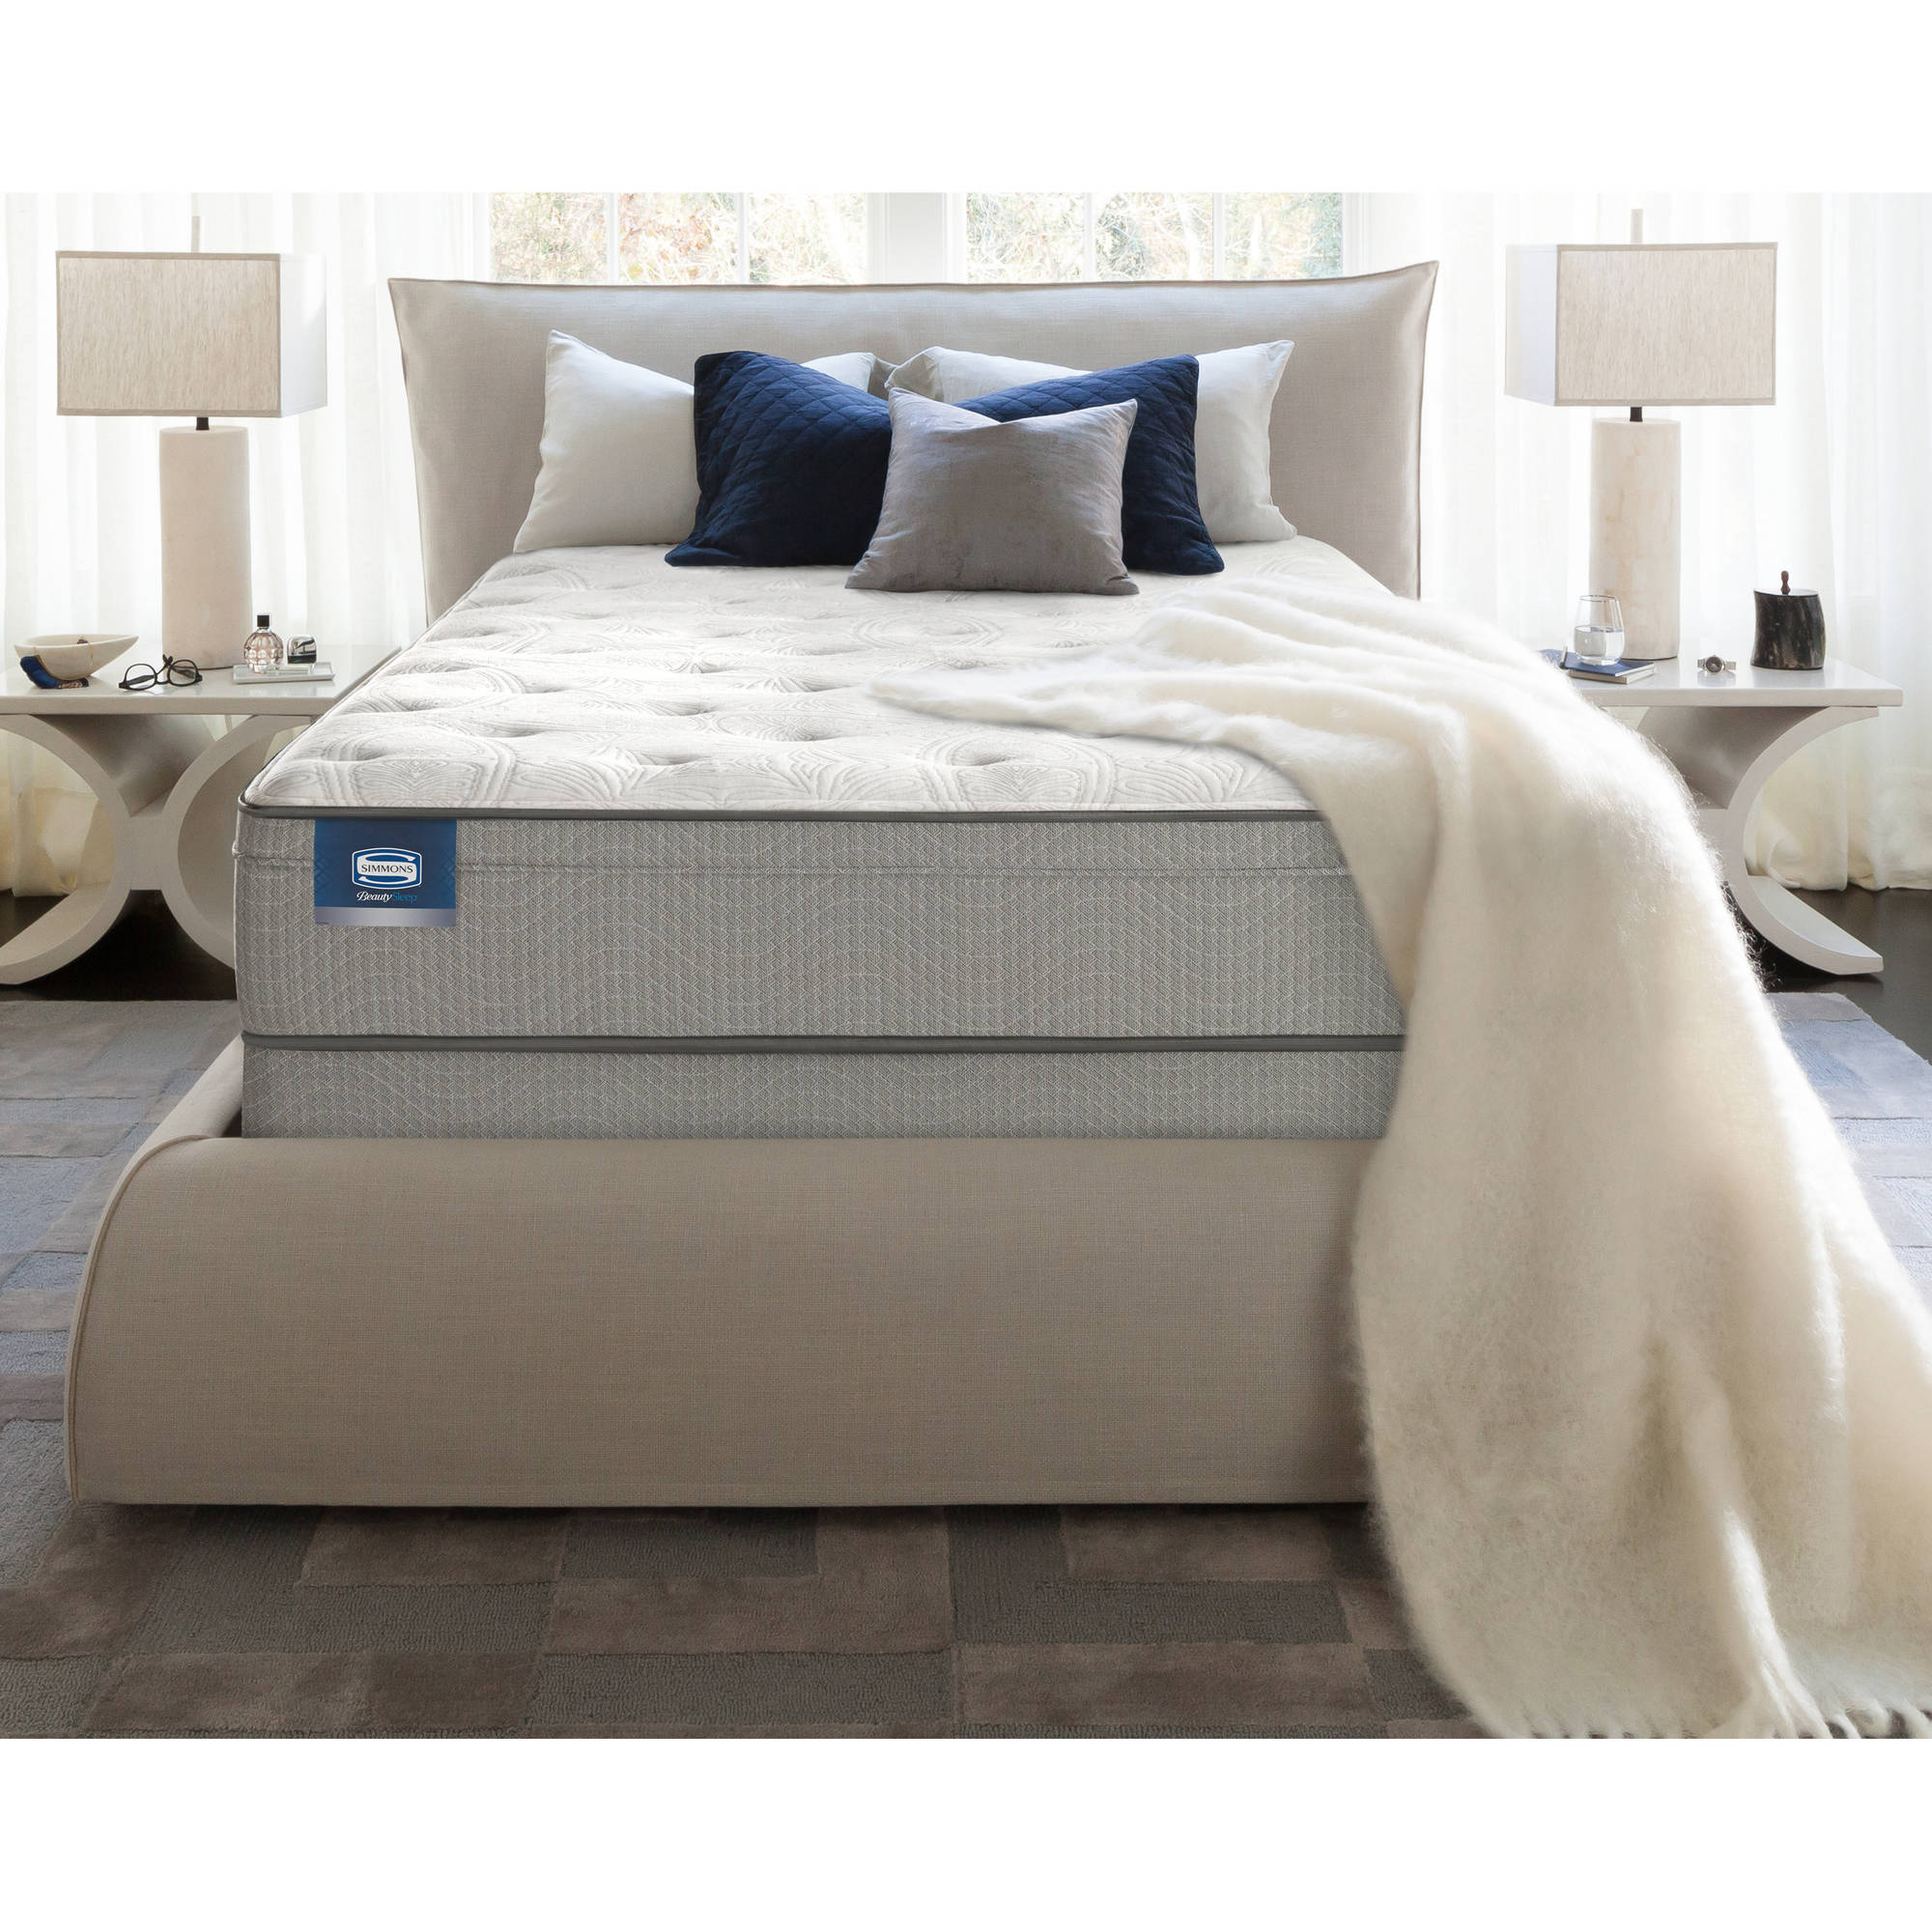 "BeautySleep Peach 14"" Plush ET Mattress, Multiple Sizes"